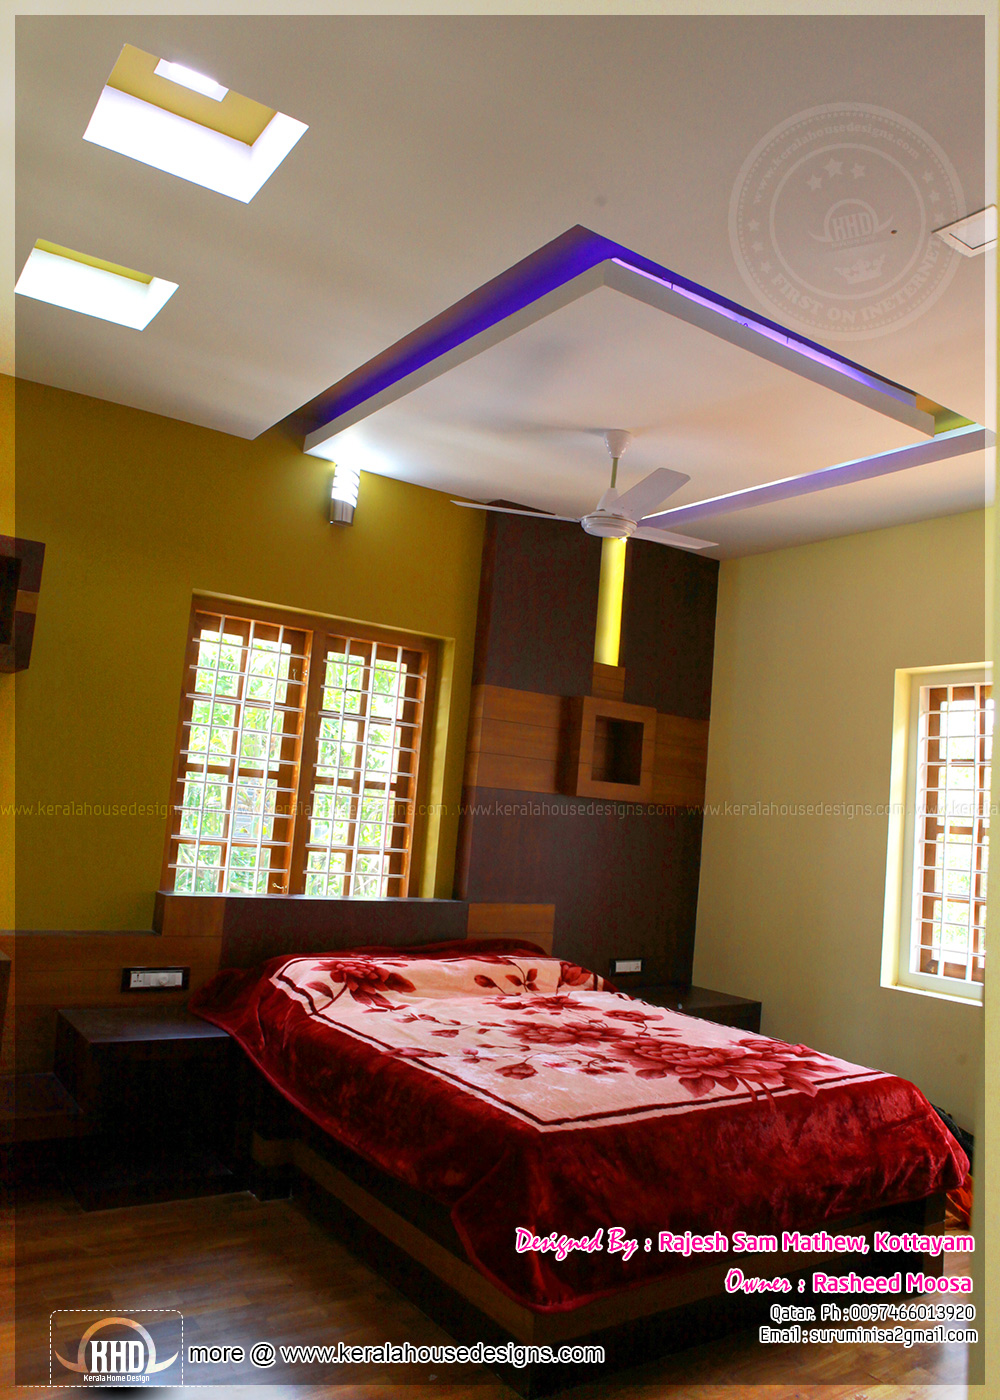 Kerala Interior Design With Photos Kerala Home Design And Floor Plans